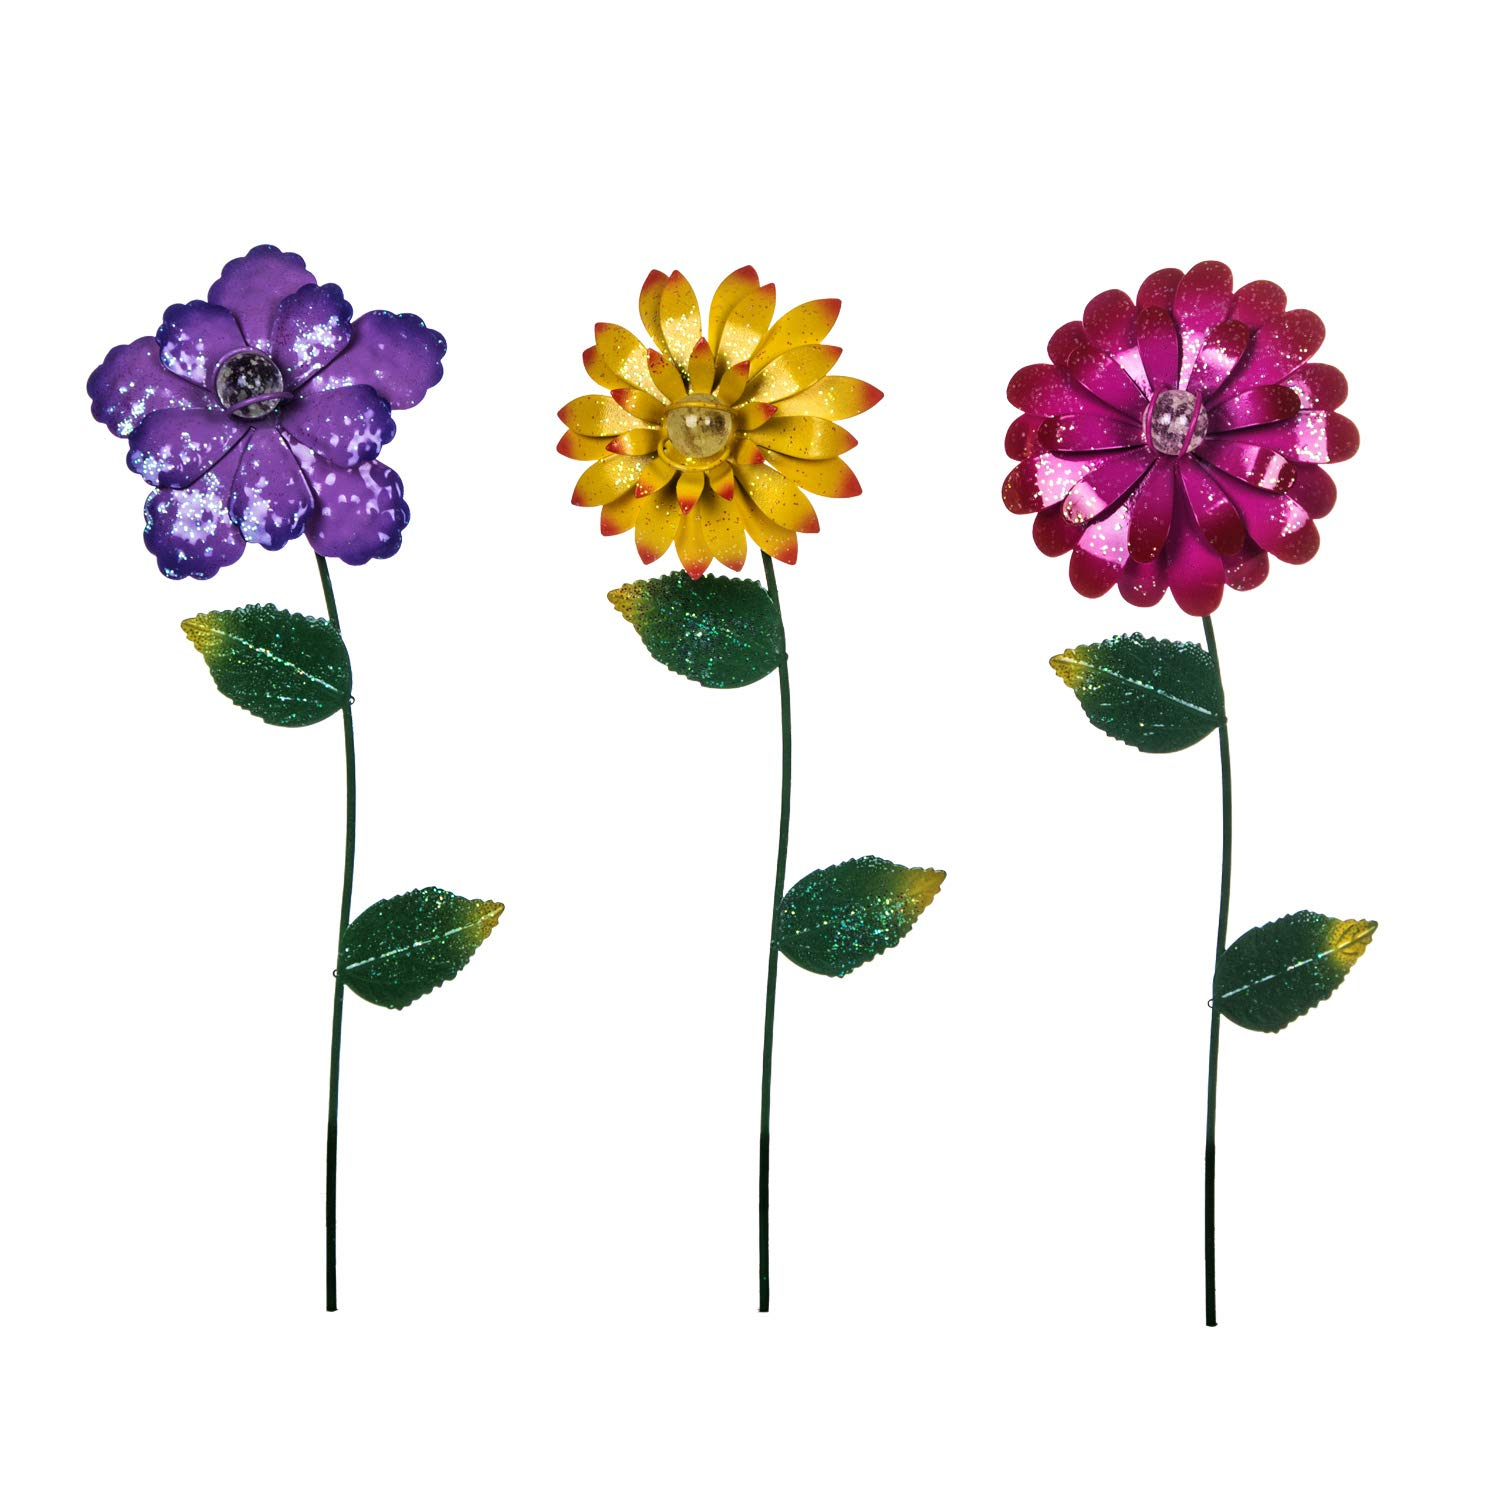 Floral Garden Stake Outdoor Glow in Dark Plant Pick Water Proof Metal Flower Stick Décor for Lawn Yard Patio,3 asst